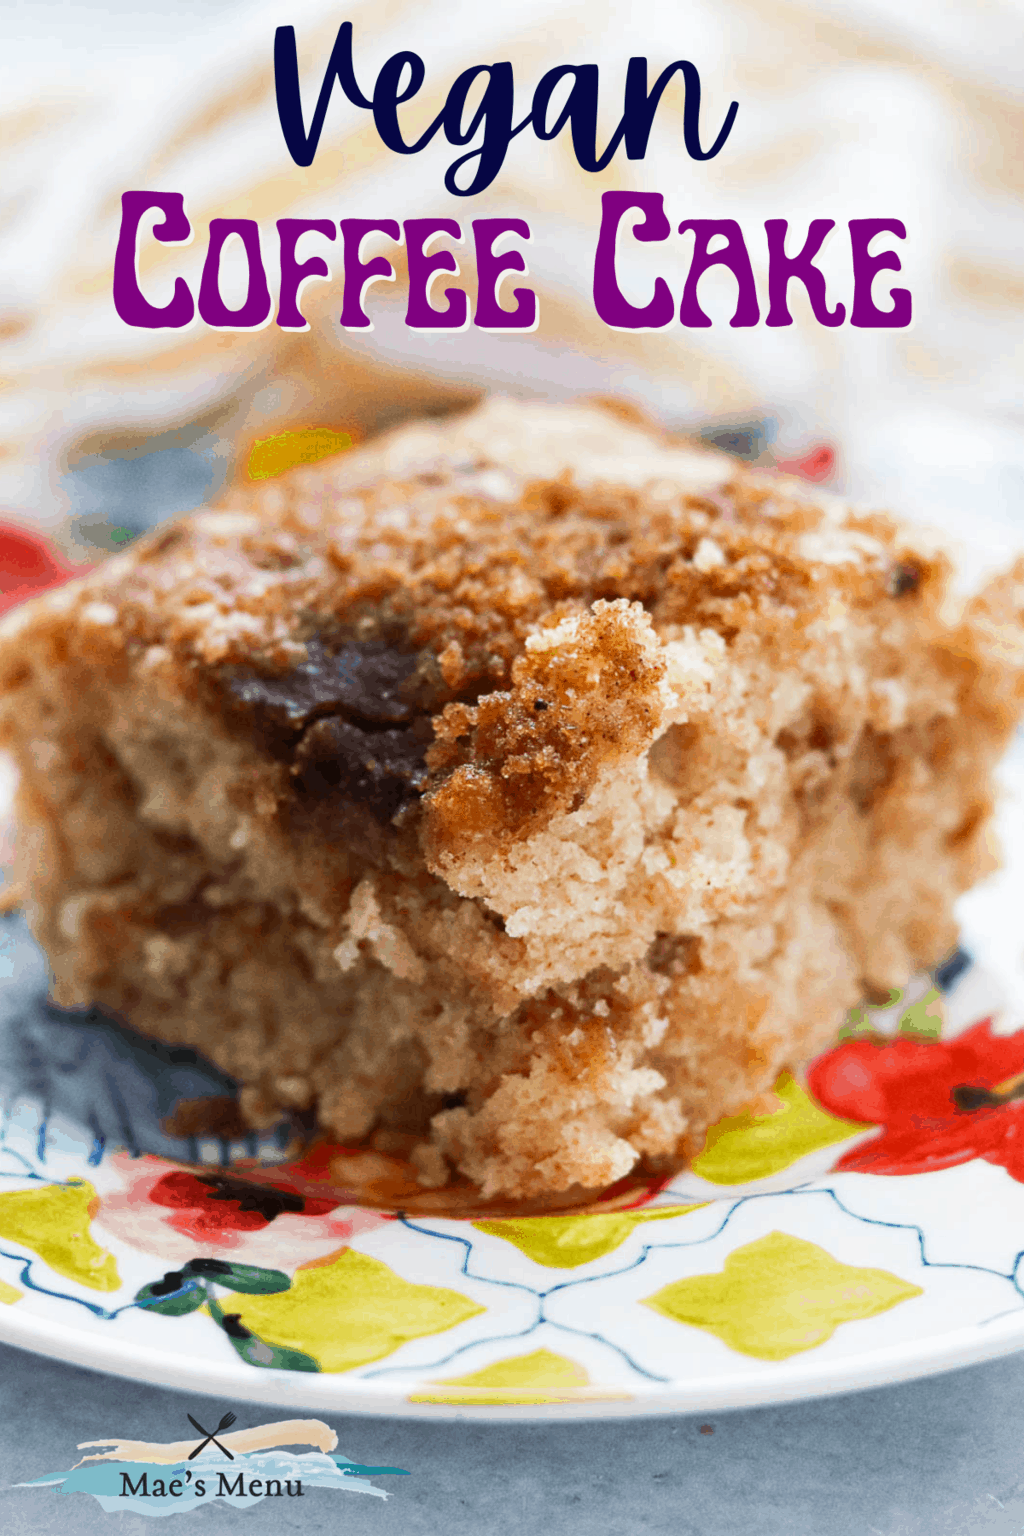 A pinterest pin for vegan coffee cake with an up-close shot of a piece on a plate